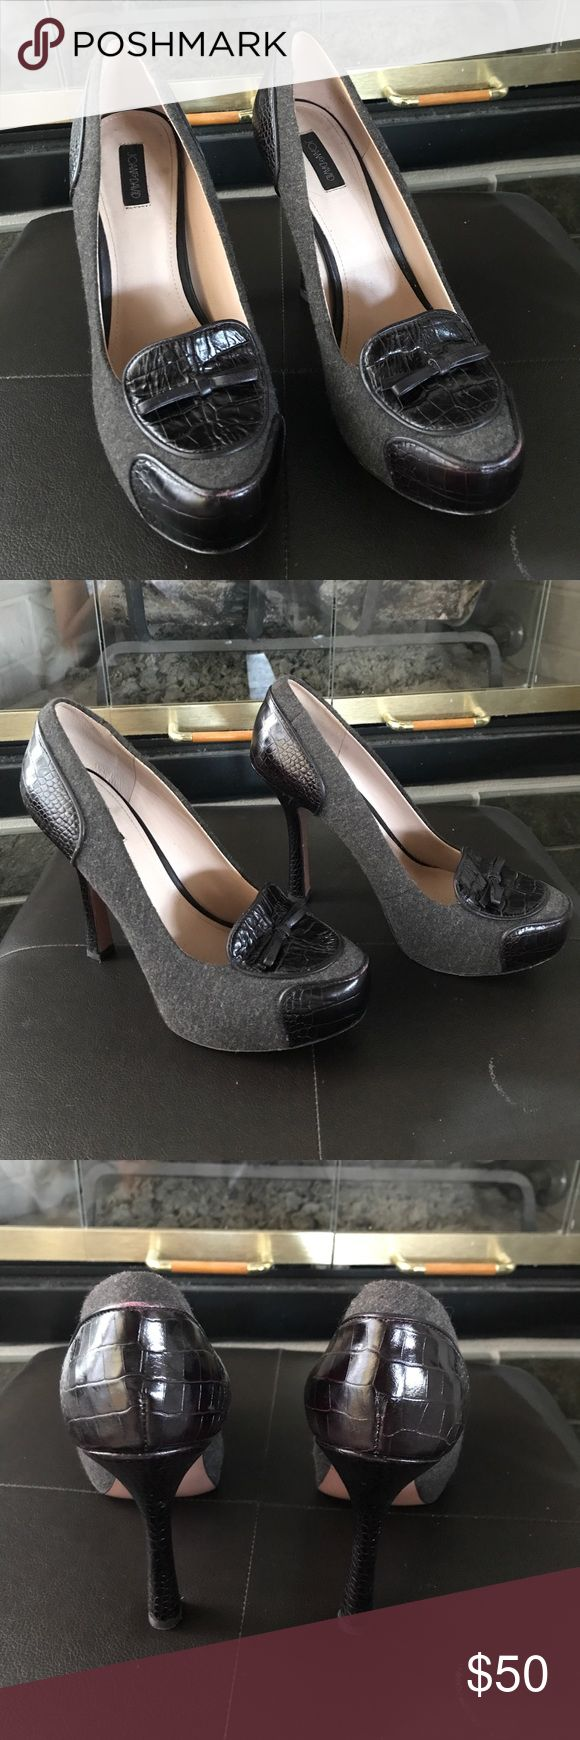 Joan & David platform heels. Joan & David platform heels. Gray fabric and dark brown leather give these shoes a very rich look! Perfect for those fall and winter outfits! Only wore a couple times, then I got prego and my feet grew! Super cute shoes, you will love them! Joan & David Shoes Platforms